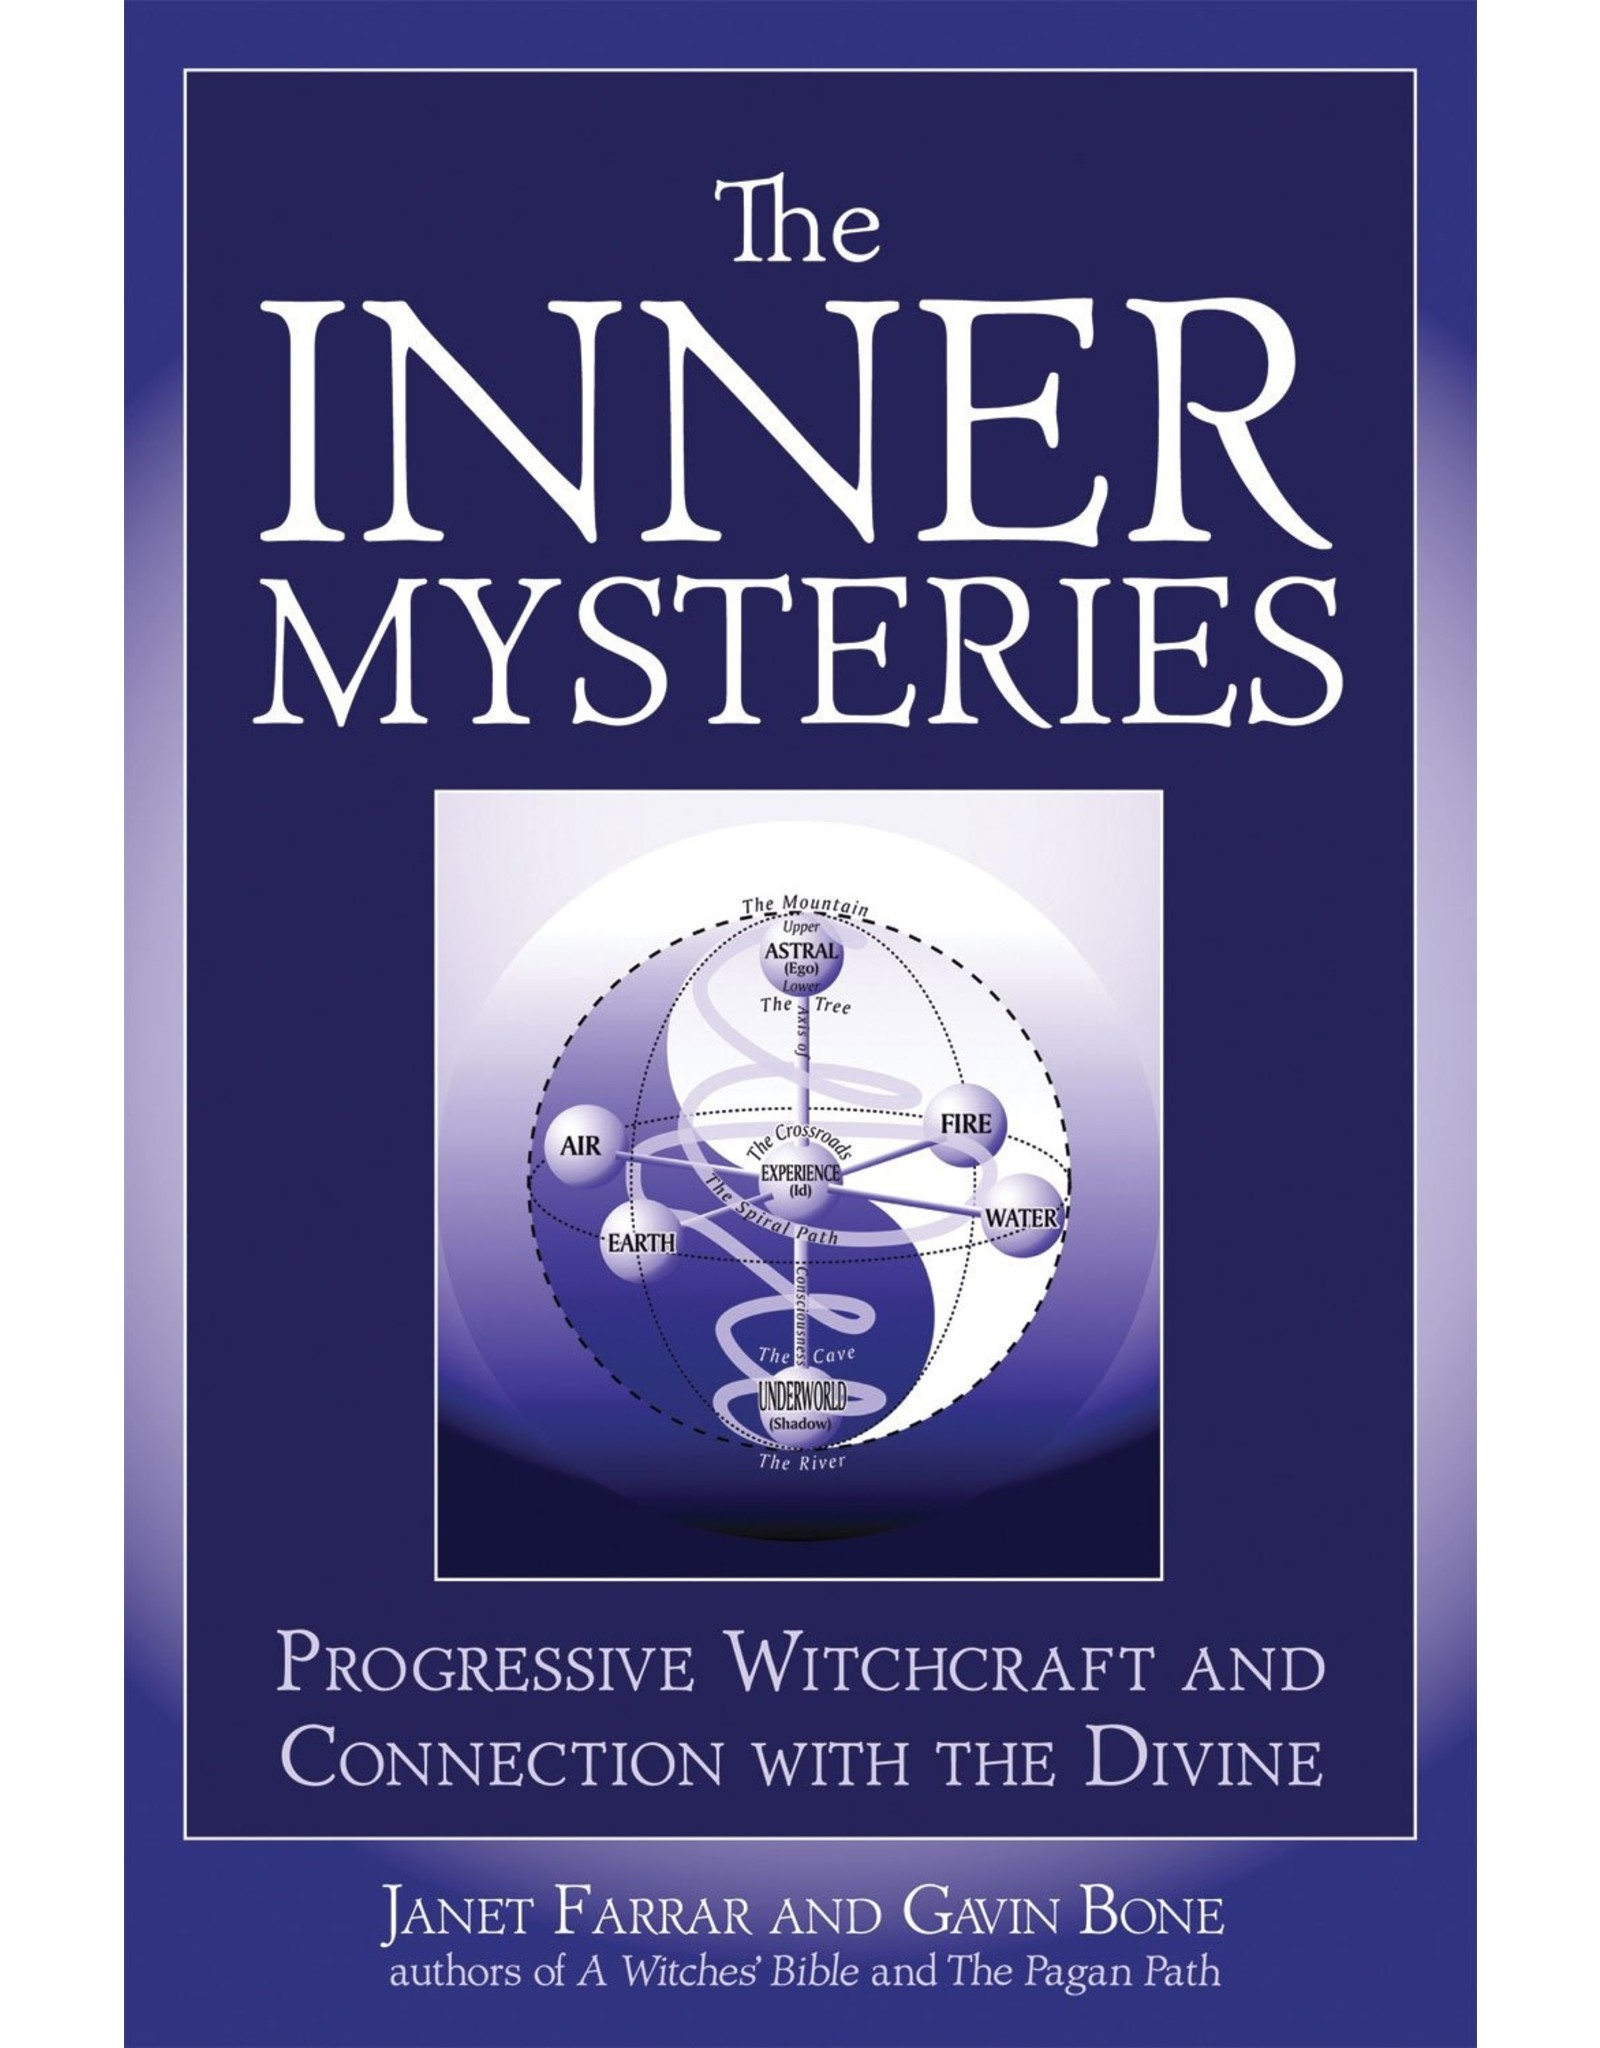 The Inner Mysteries: Progressive Witchcraft and Connection with the Divine